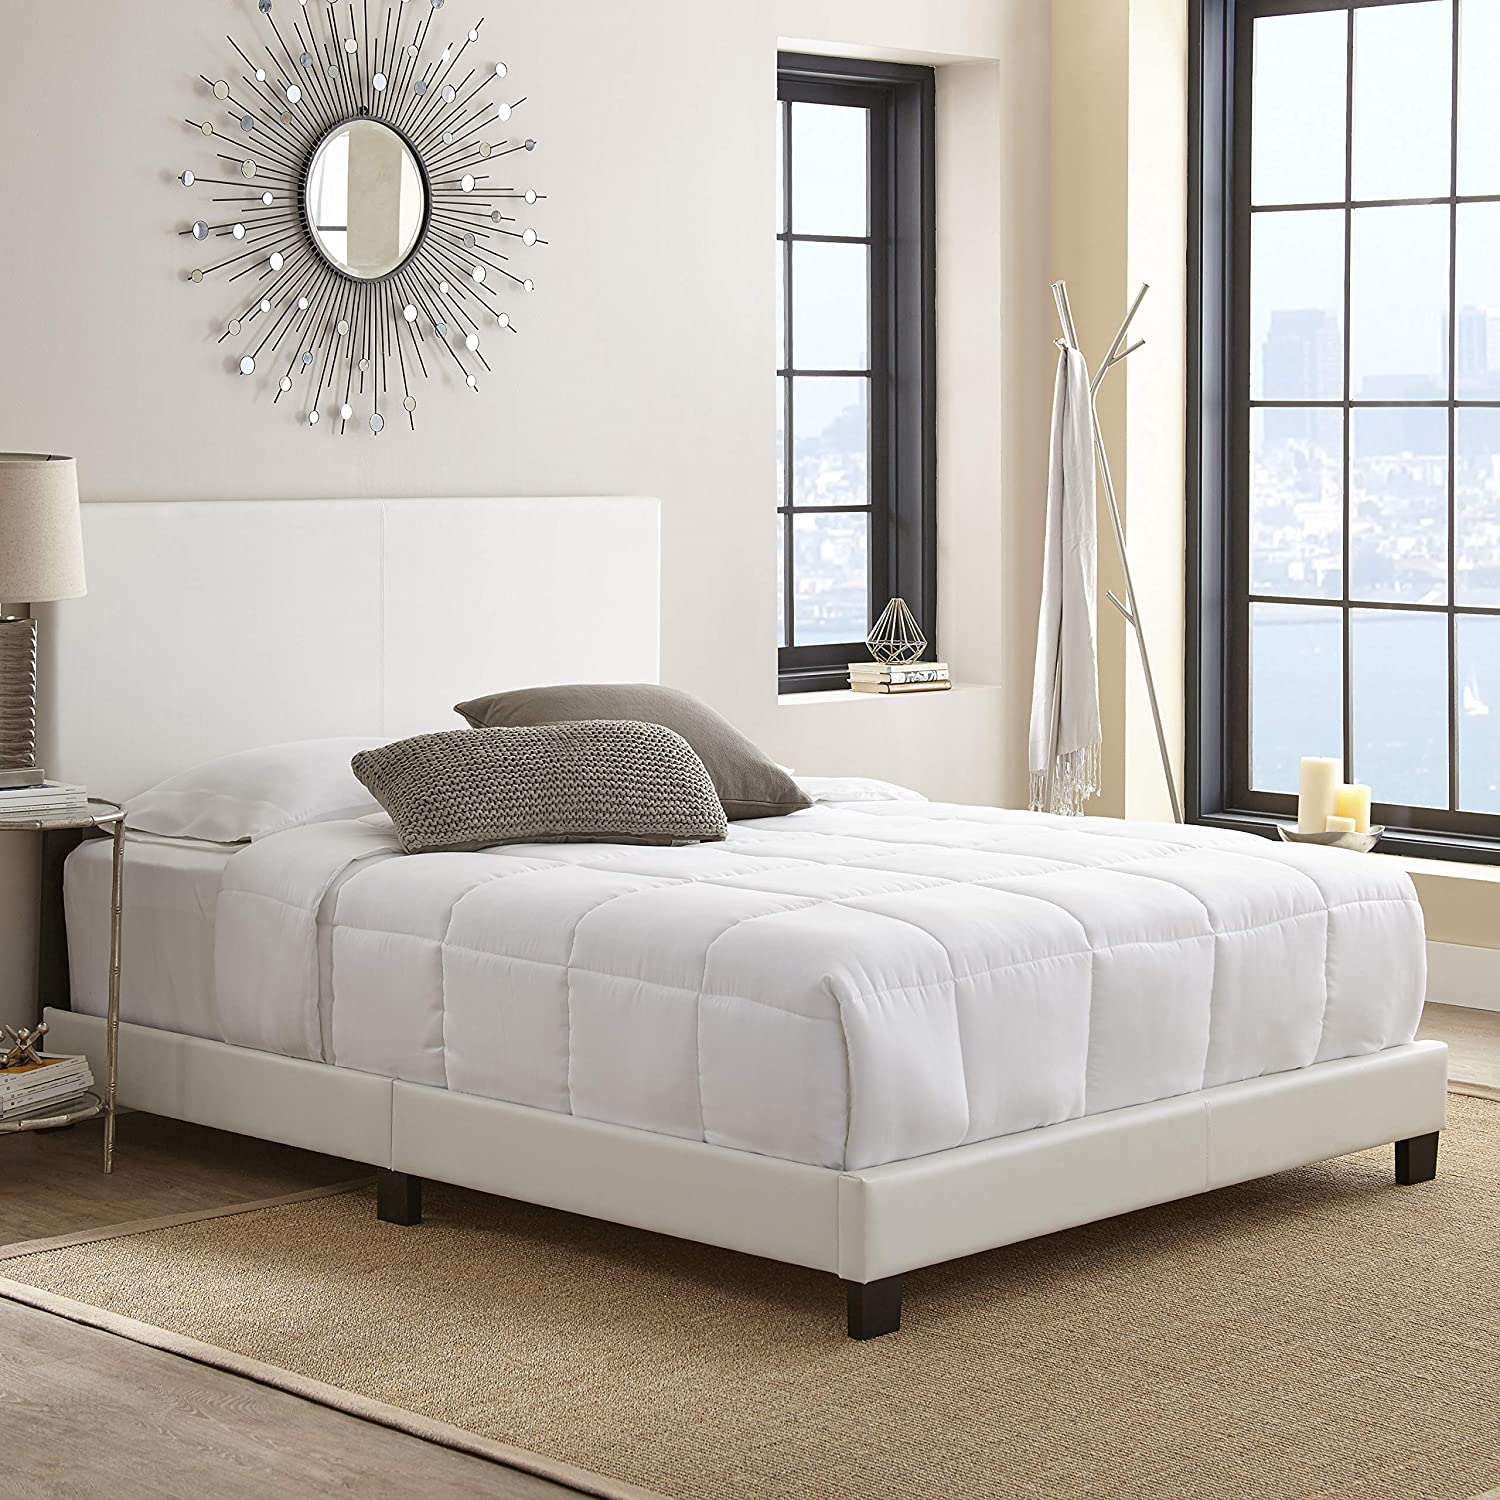 new concept b007e 69fa7 Boyd Sleep Montana Upholstered Platform Bed Frame with Headboard: Faux  Leather, White, Full